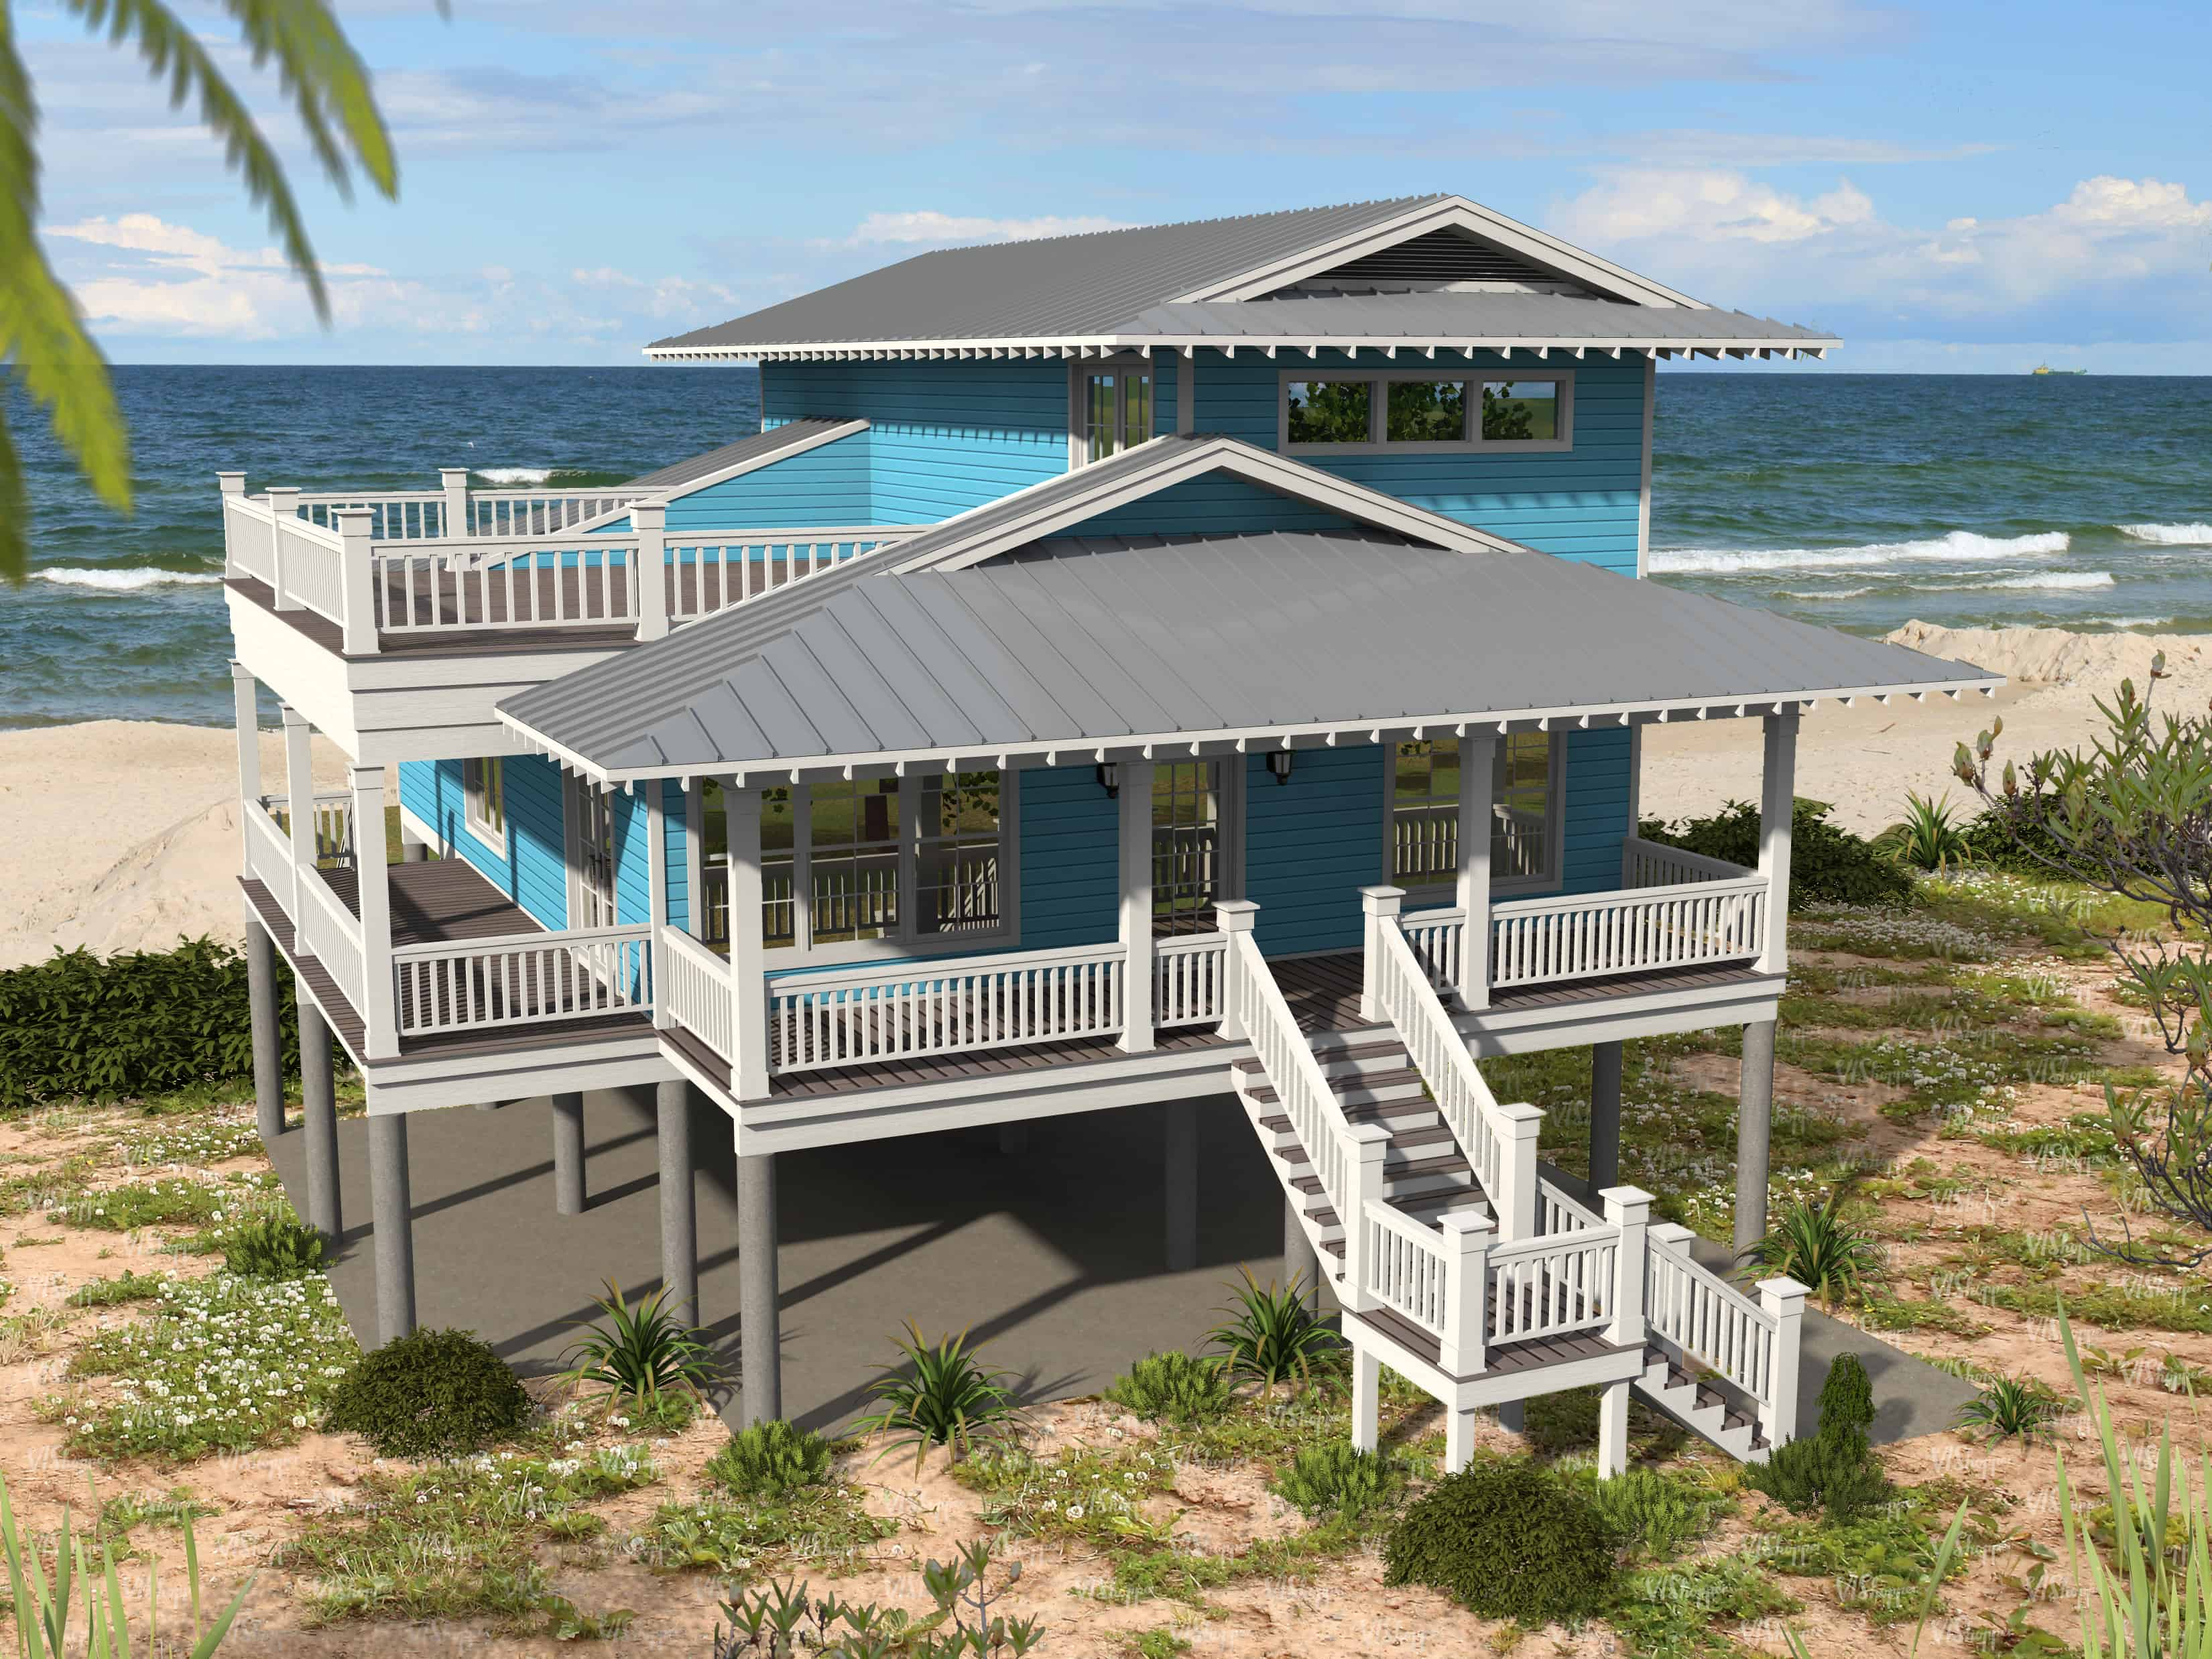 Beachfront home with raised pier foundation and roof deck